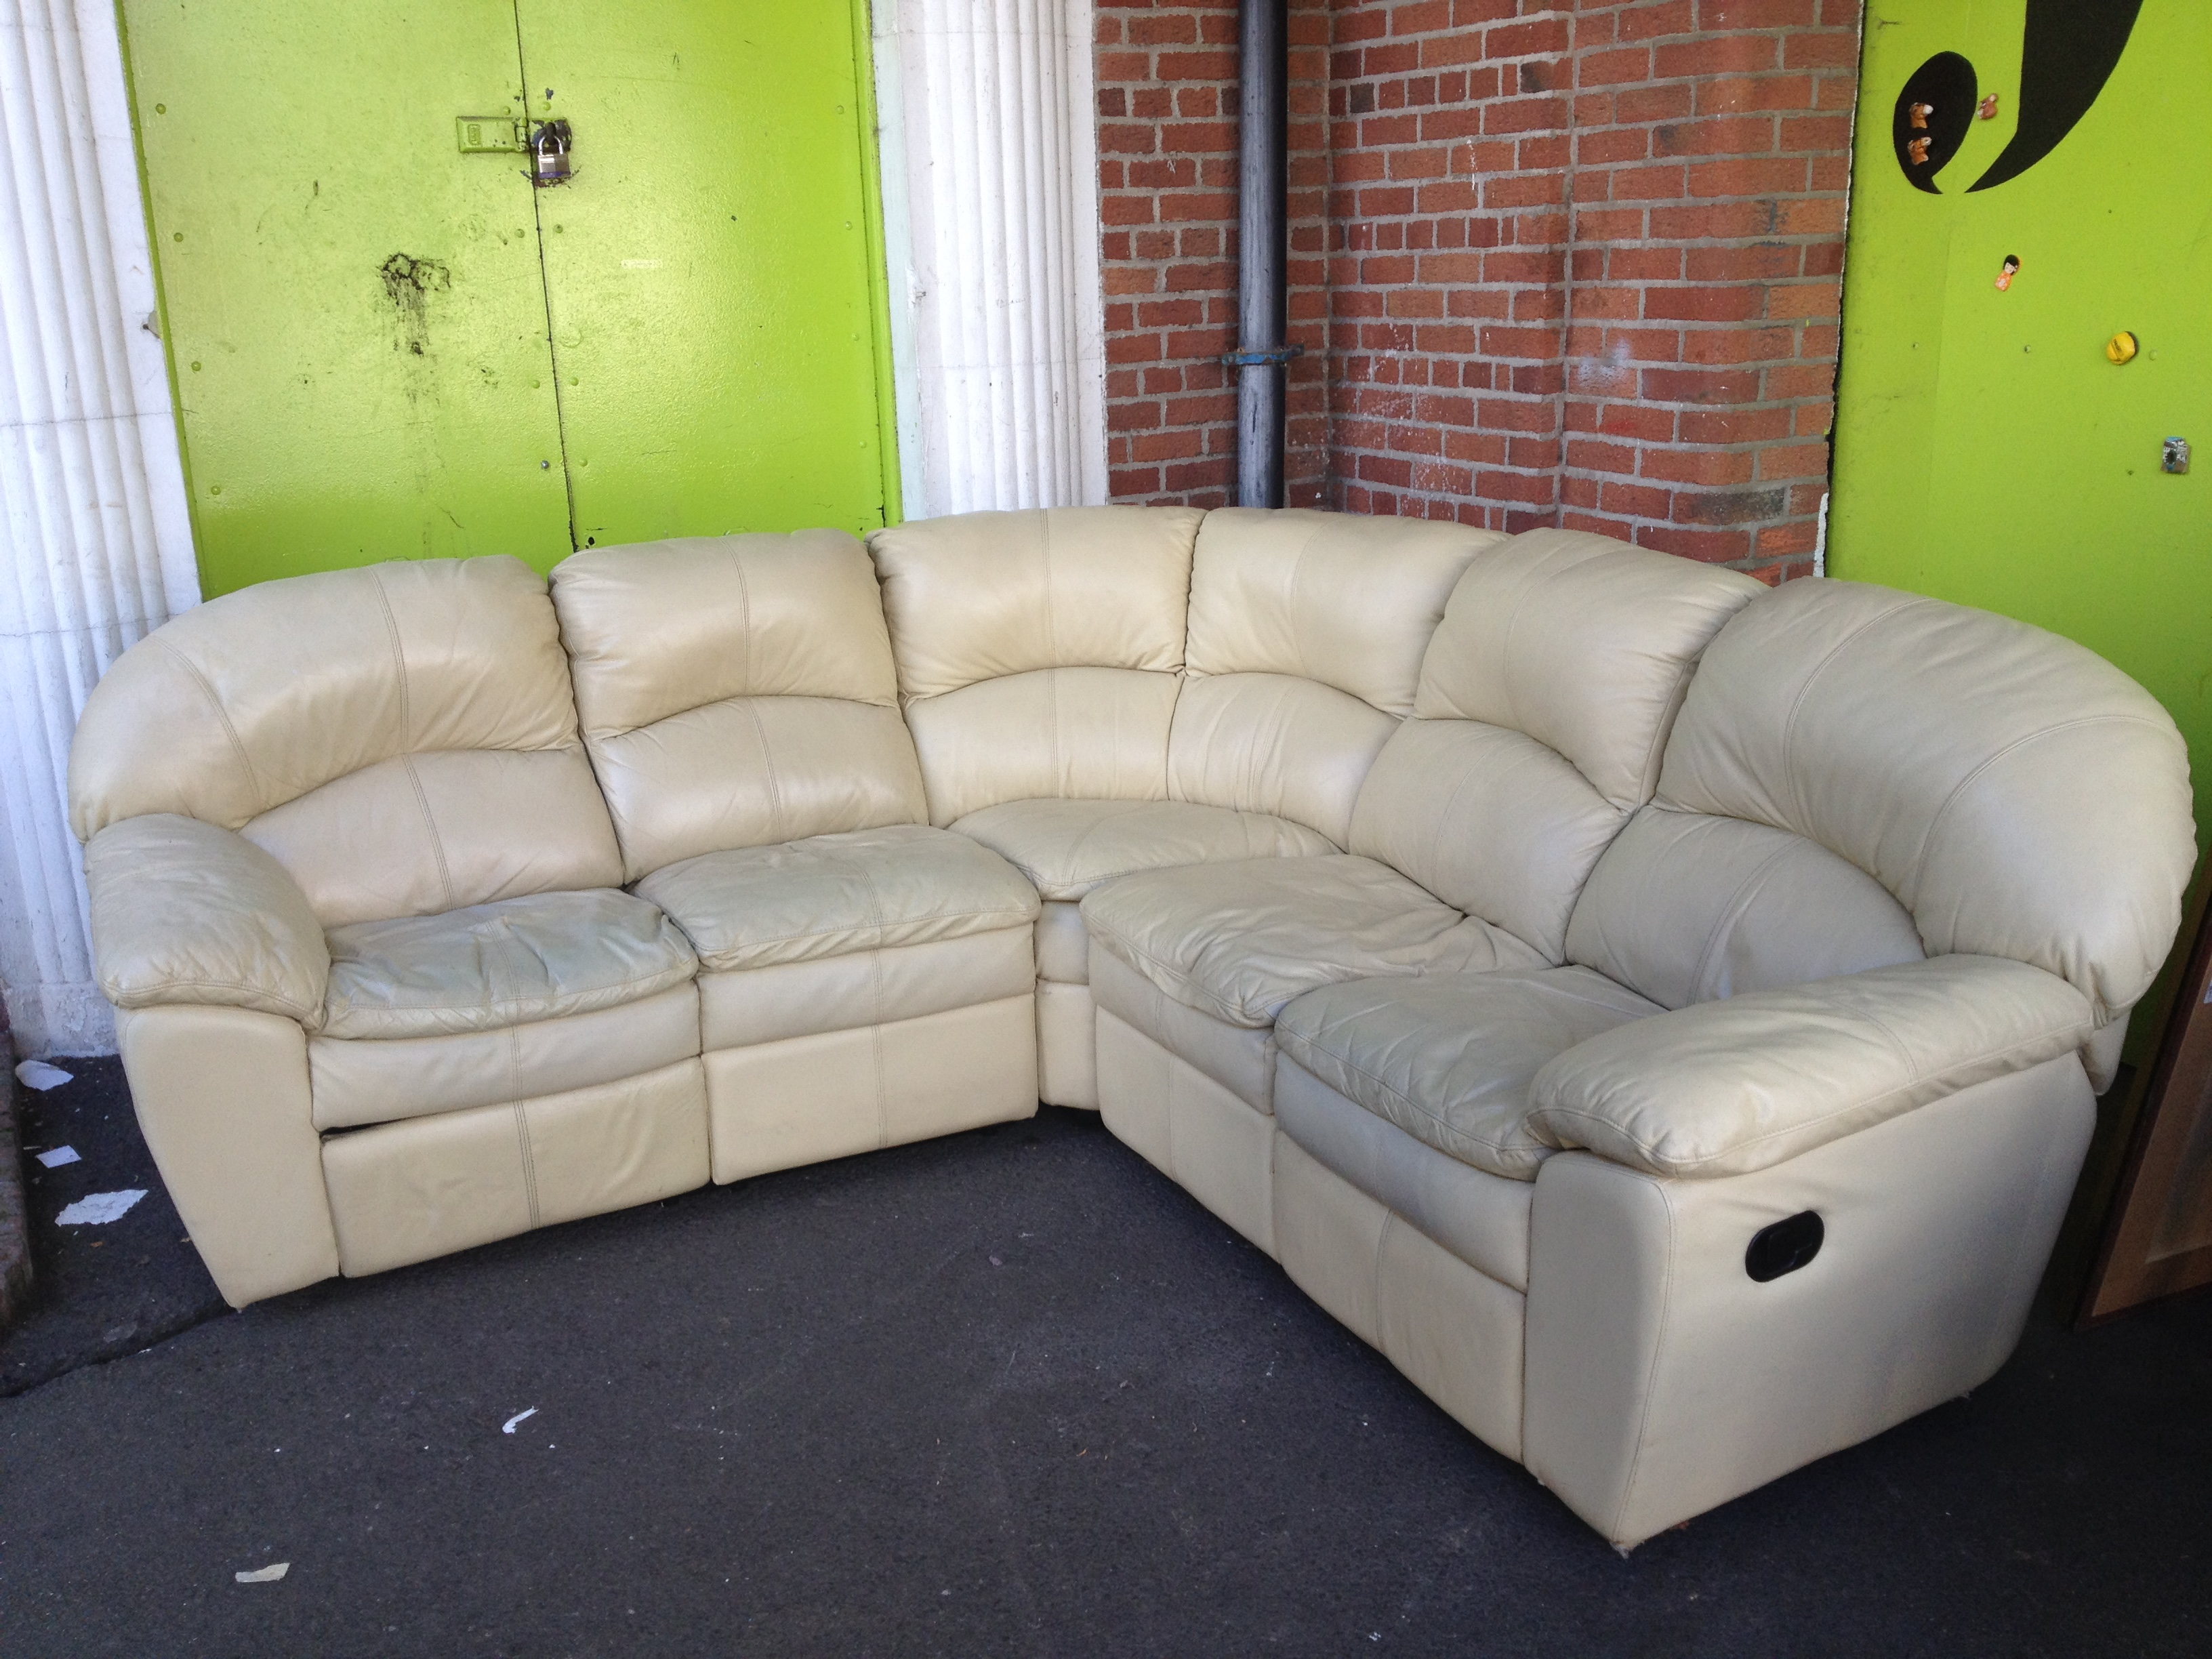 2nd Hand Sofas For Sale Buy Cheap Sofas And Couches In Dublin # Gebrauchte Muebles